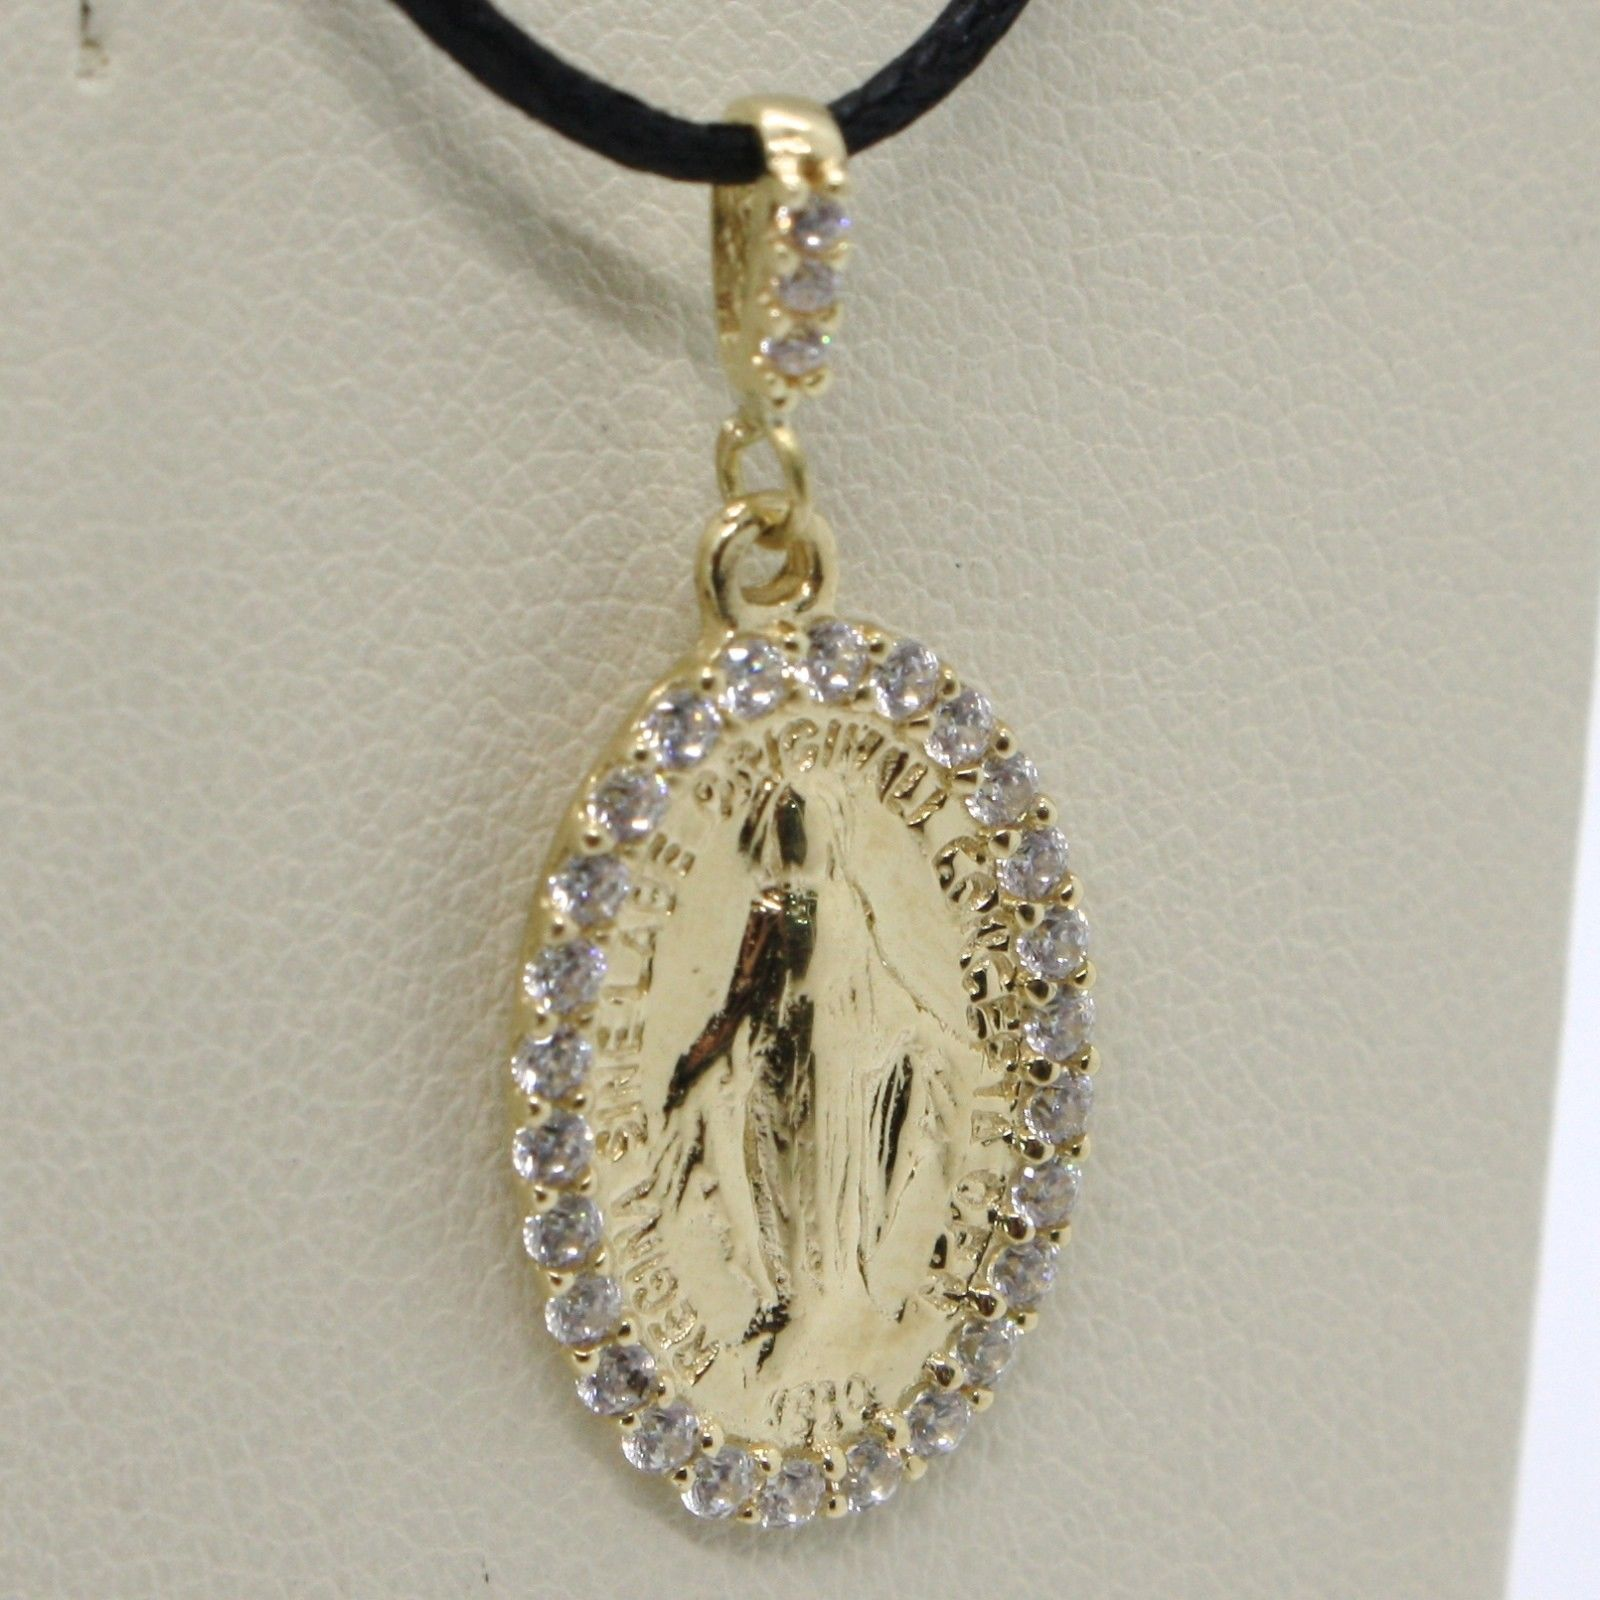 18K YELLOW GOLD ZIRCONIA MIRACULOUS MEDAL VIRGIN MARY MADONNA MADE IN ITALY